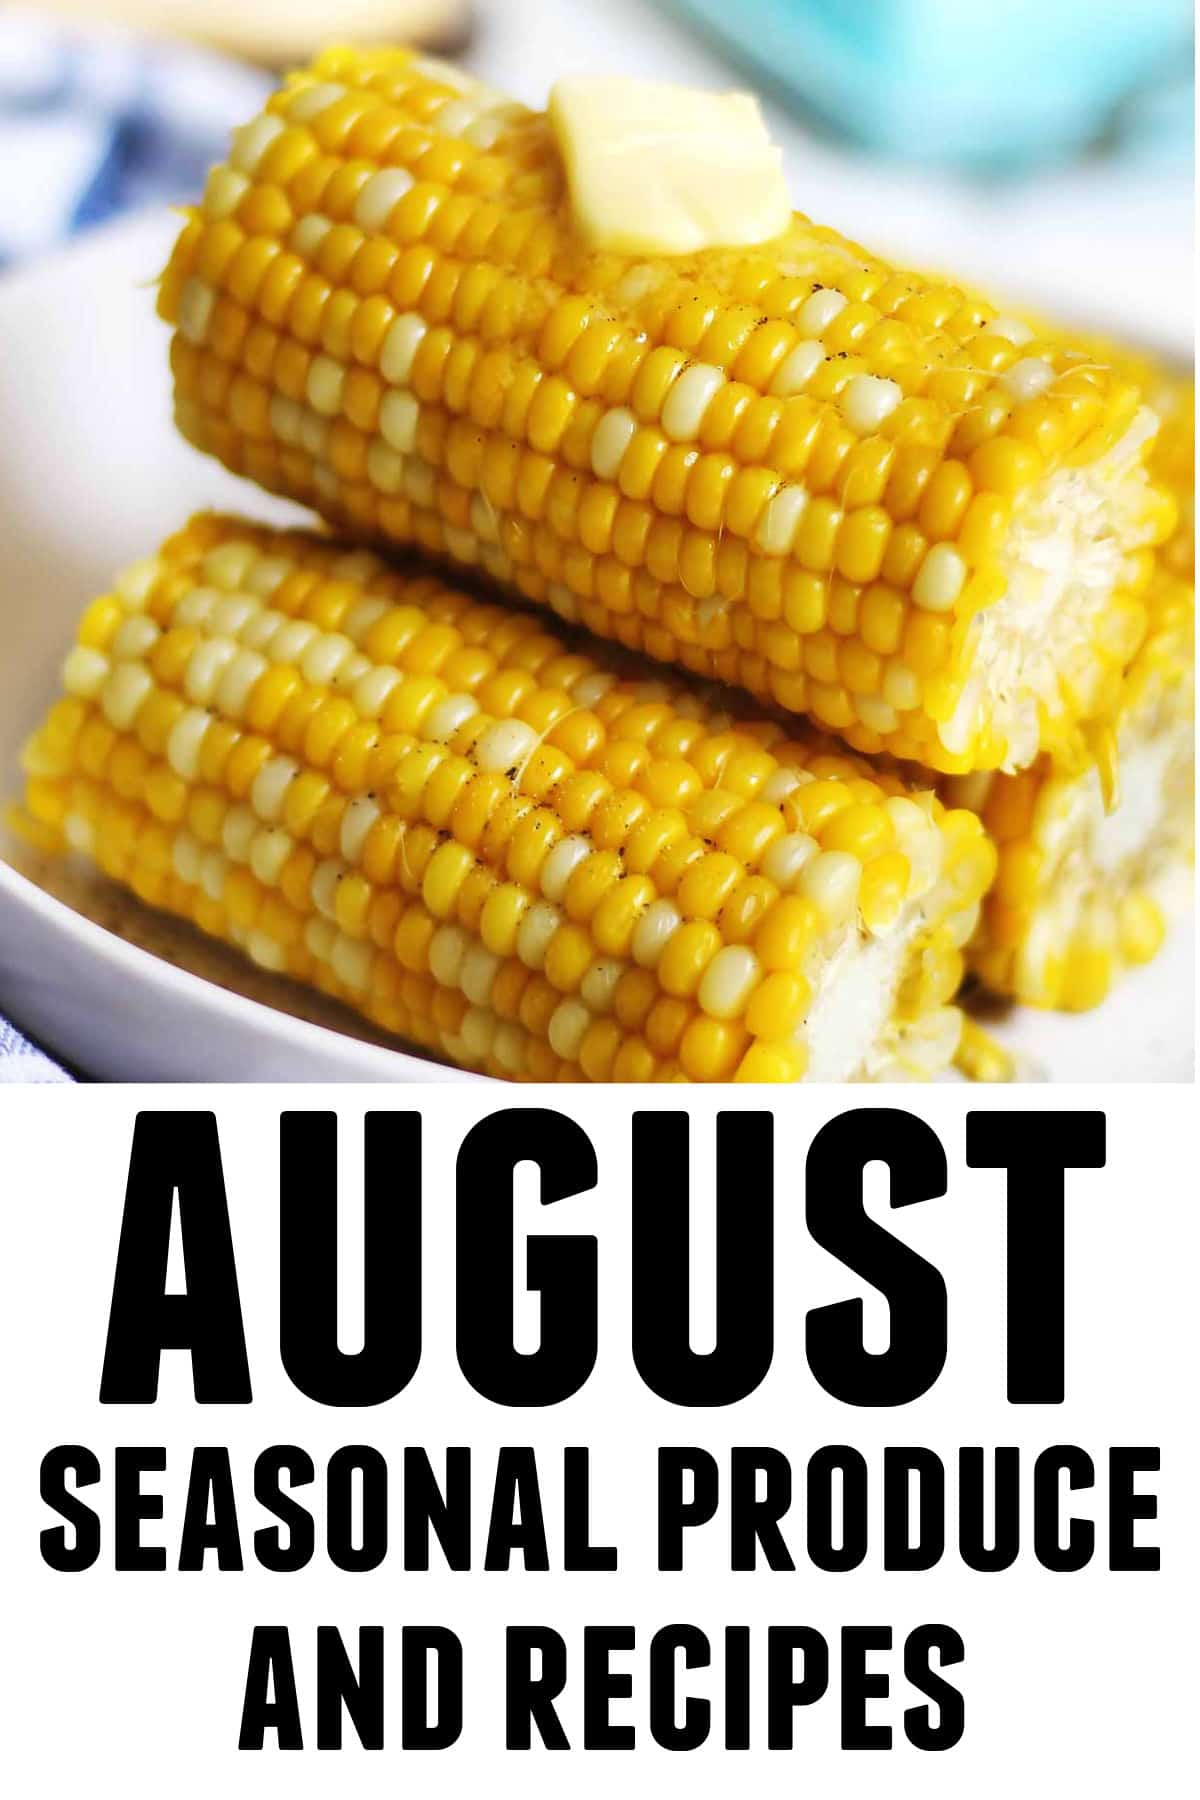 August seasonal produce and recipes text with corn on the cob picture